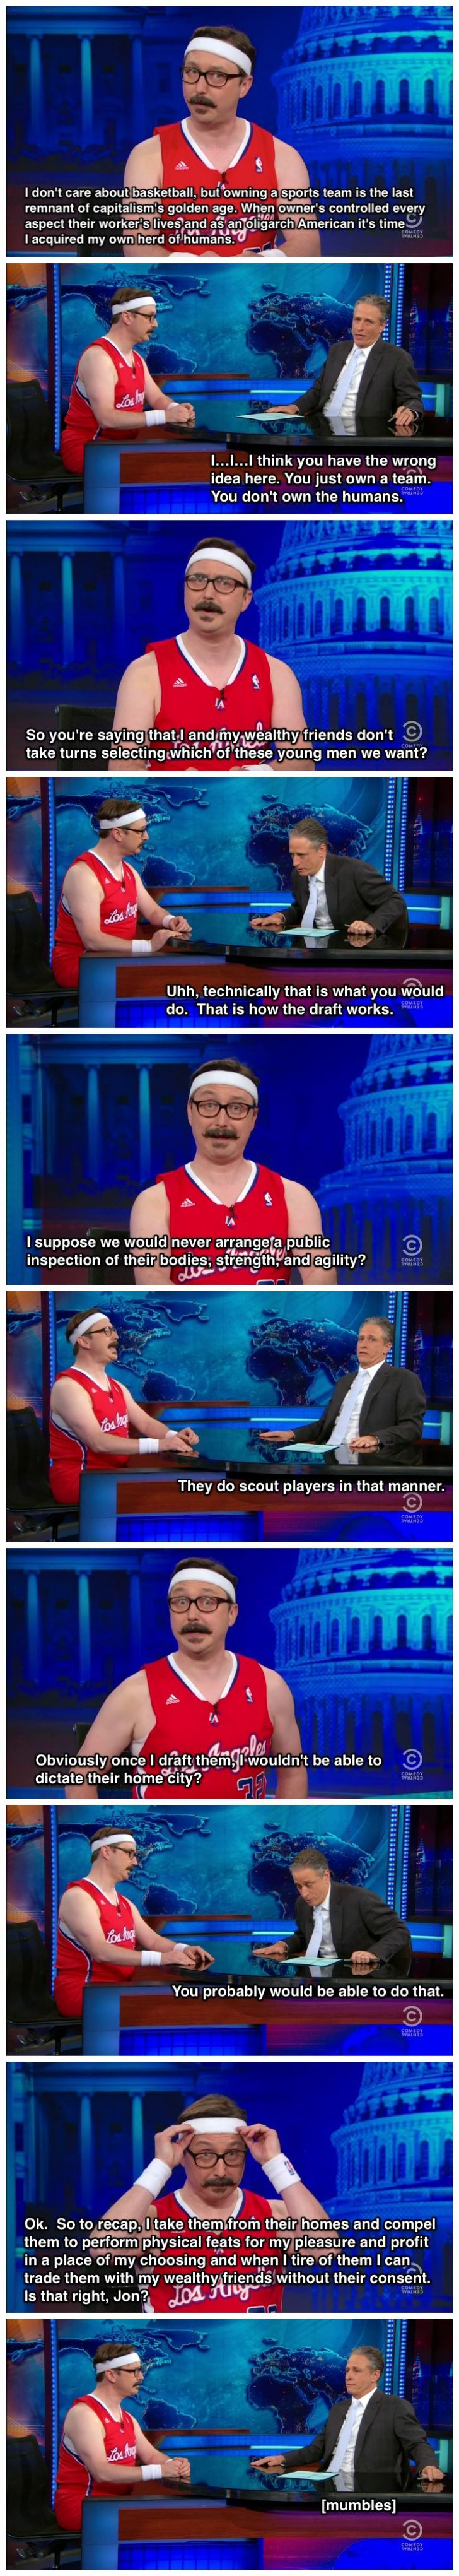 John Hodgman explains to Jon Stewart why he wants to buy the LA Clippers